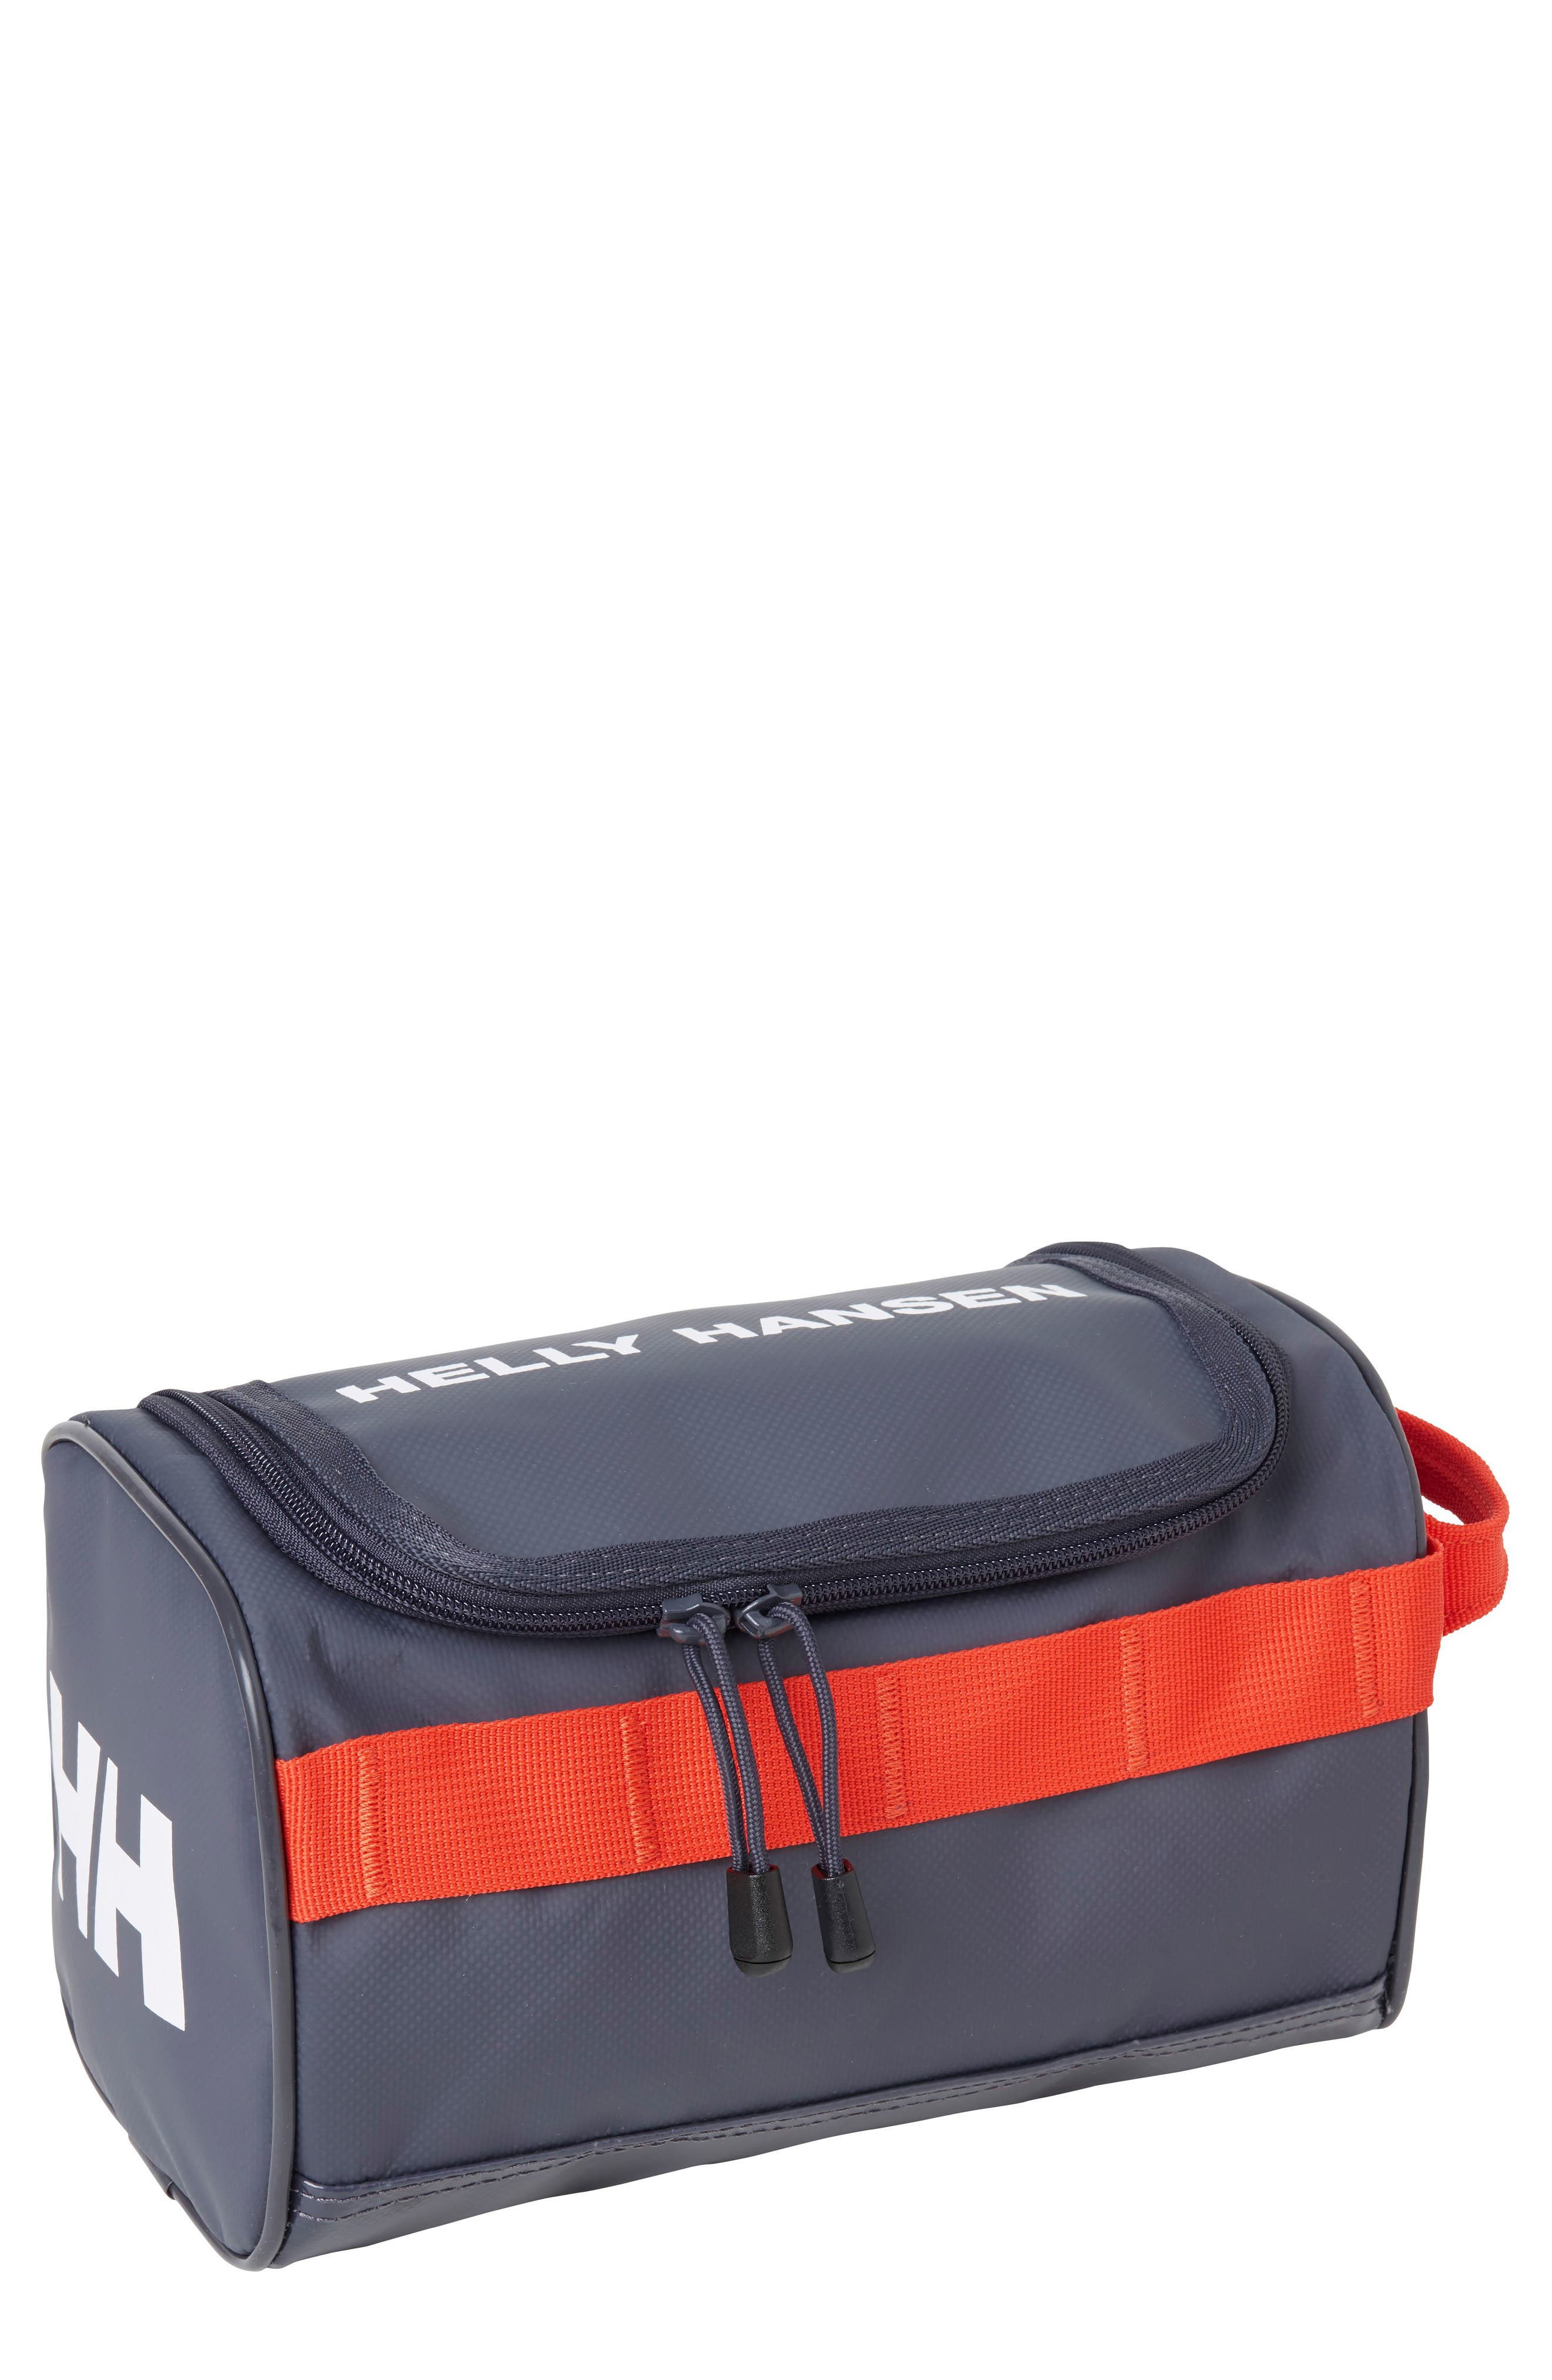 Helly Hansen New Classic Dopp Kit